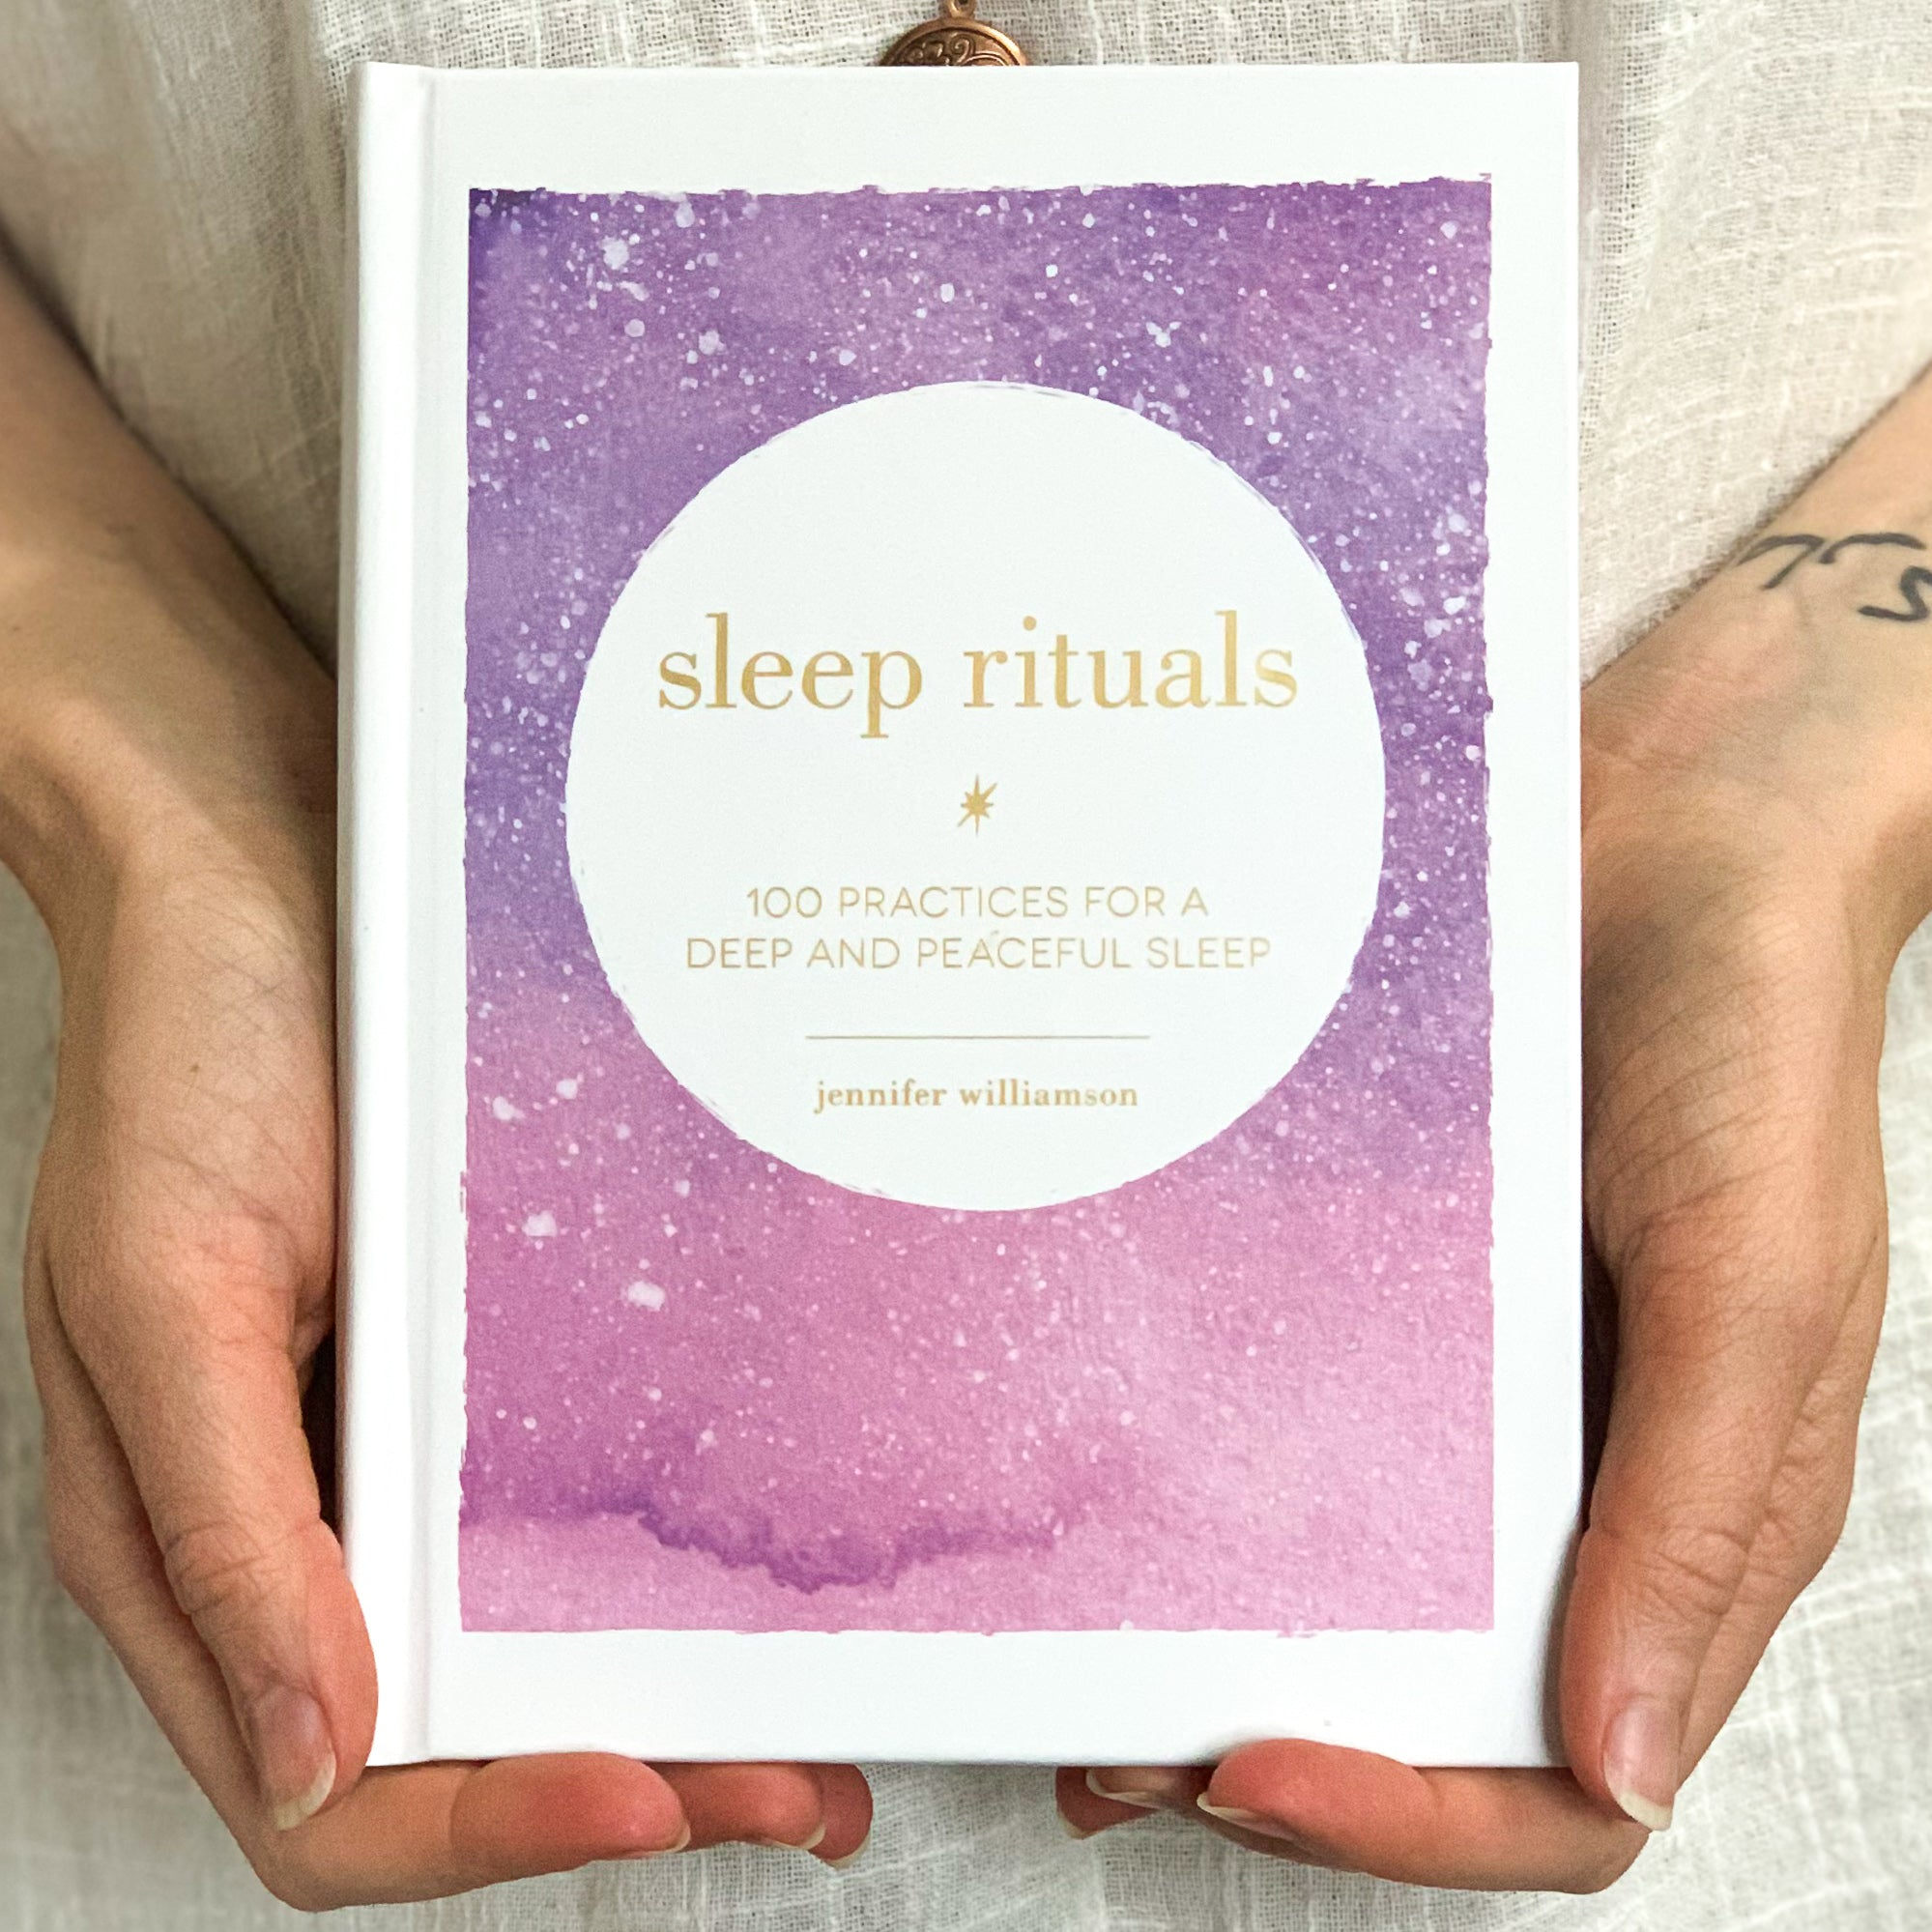 Sleep Rituals: 100 Practices for a Deep and Peaceful Sleep by Jennifer Williamson